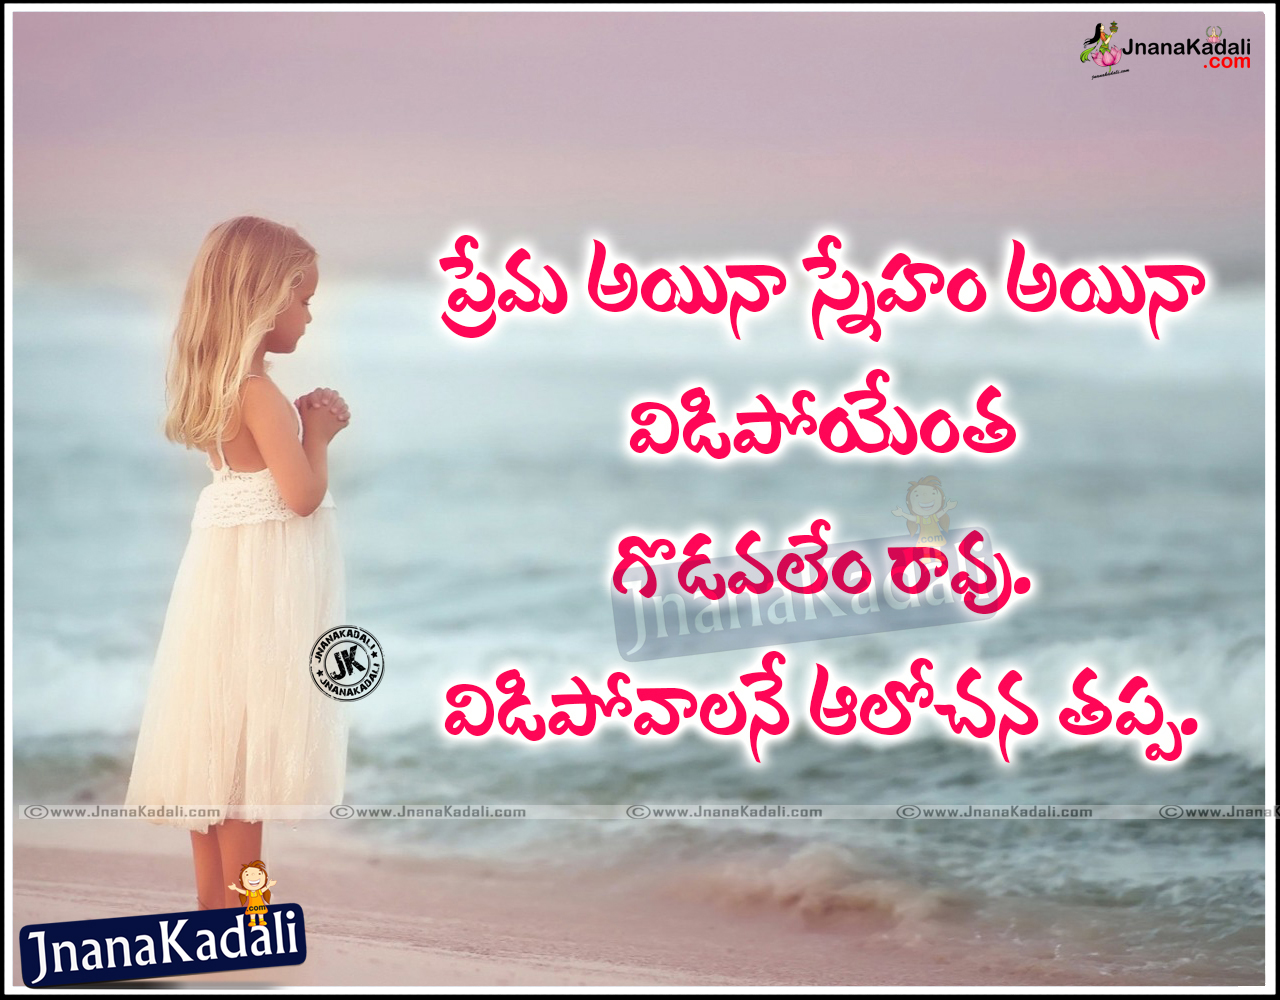 Telugu Love Quotes Love Meaning In Telugu  Love Quotes In Telugu  Jnana Kadali